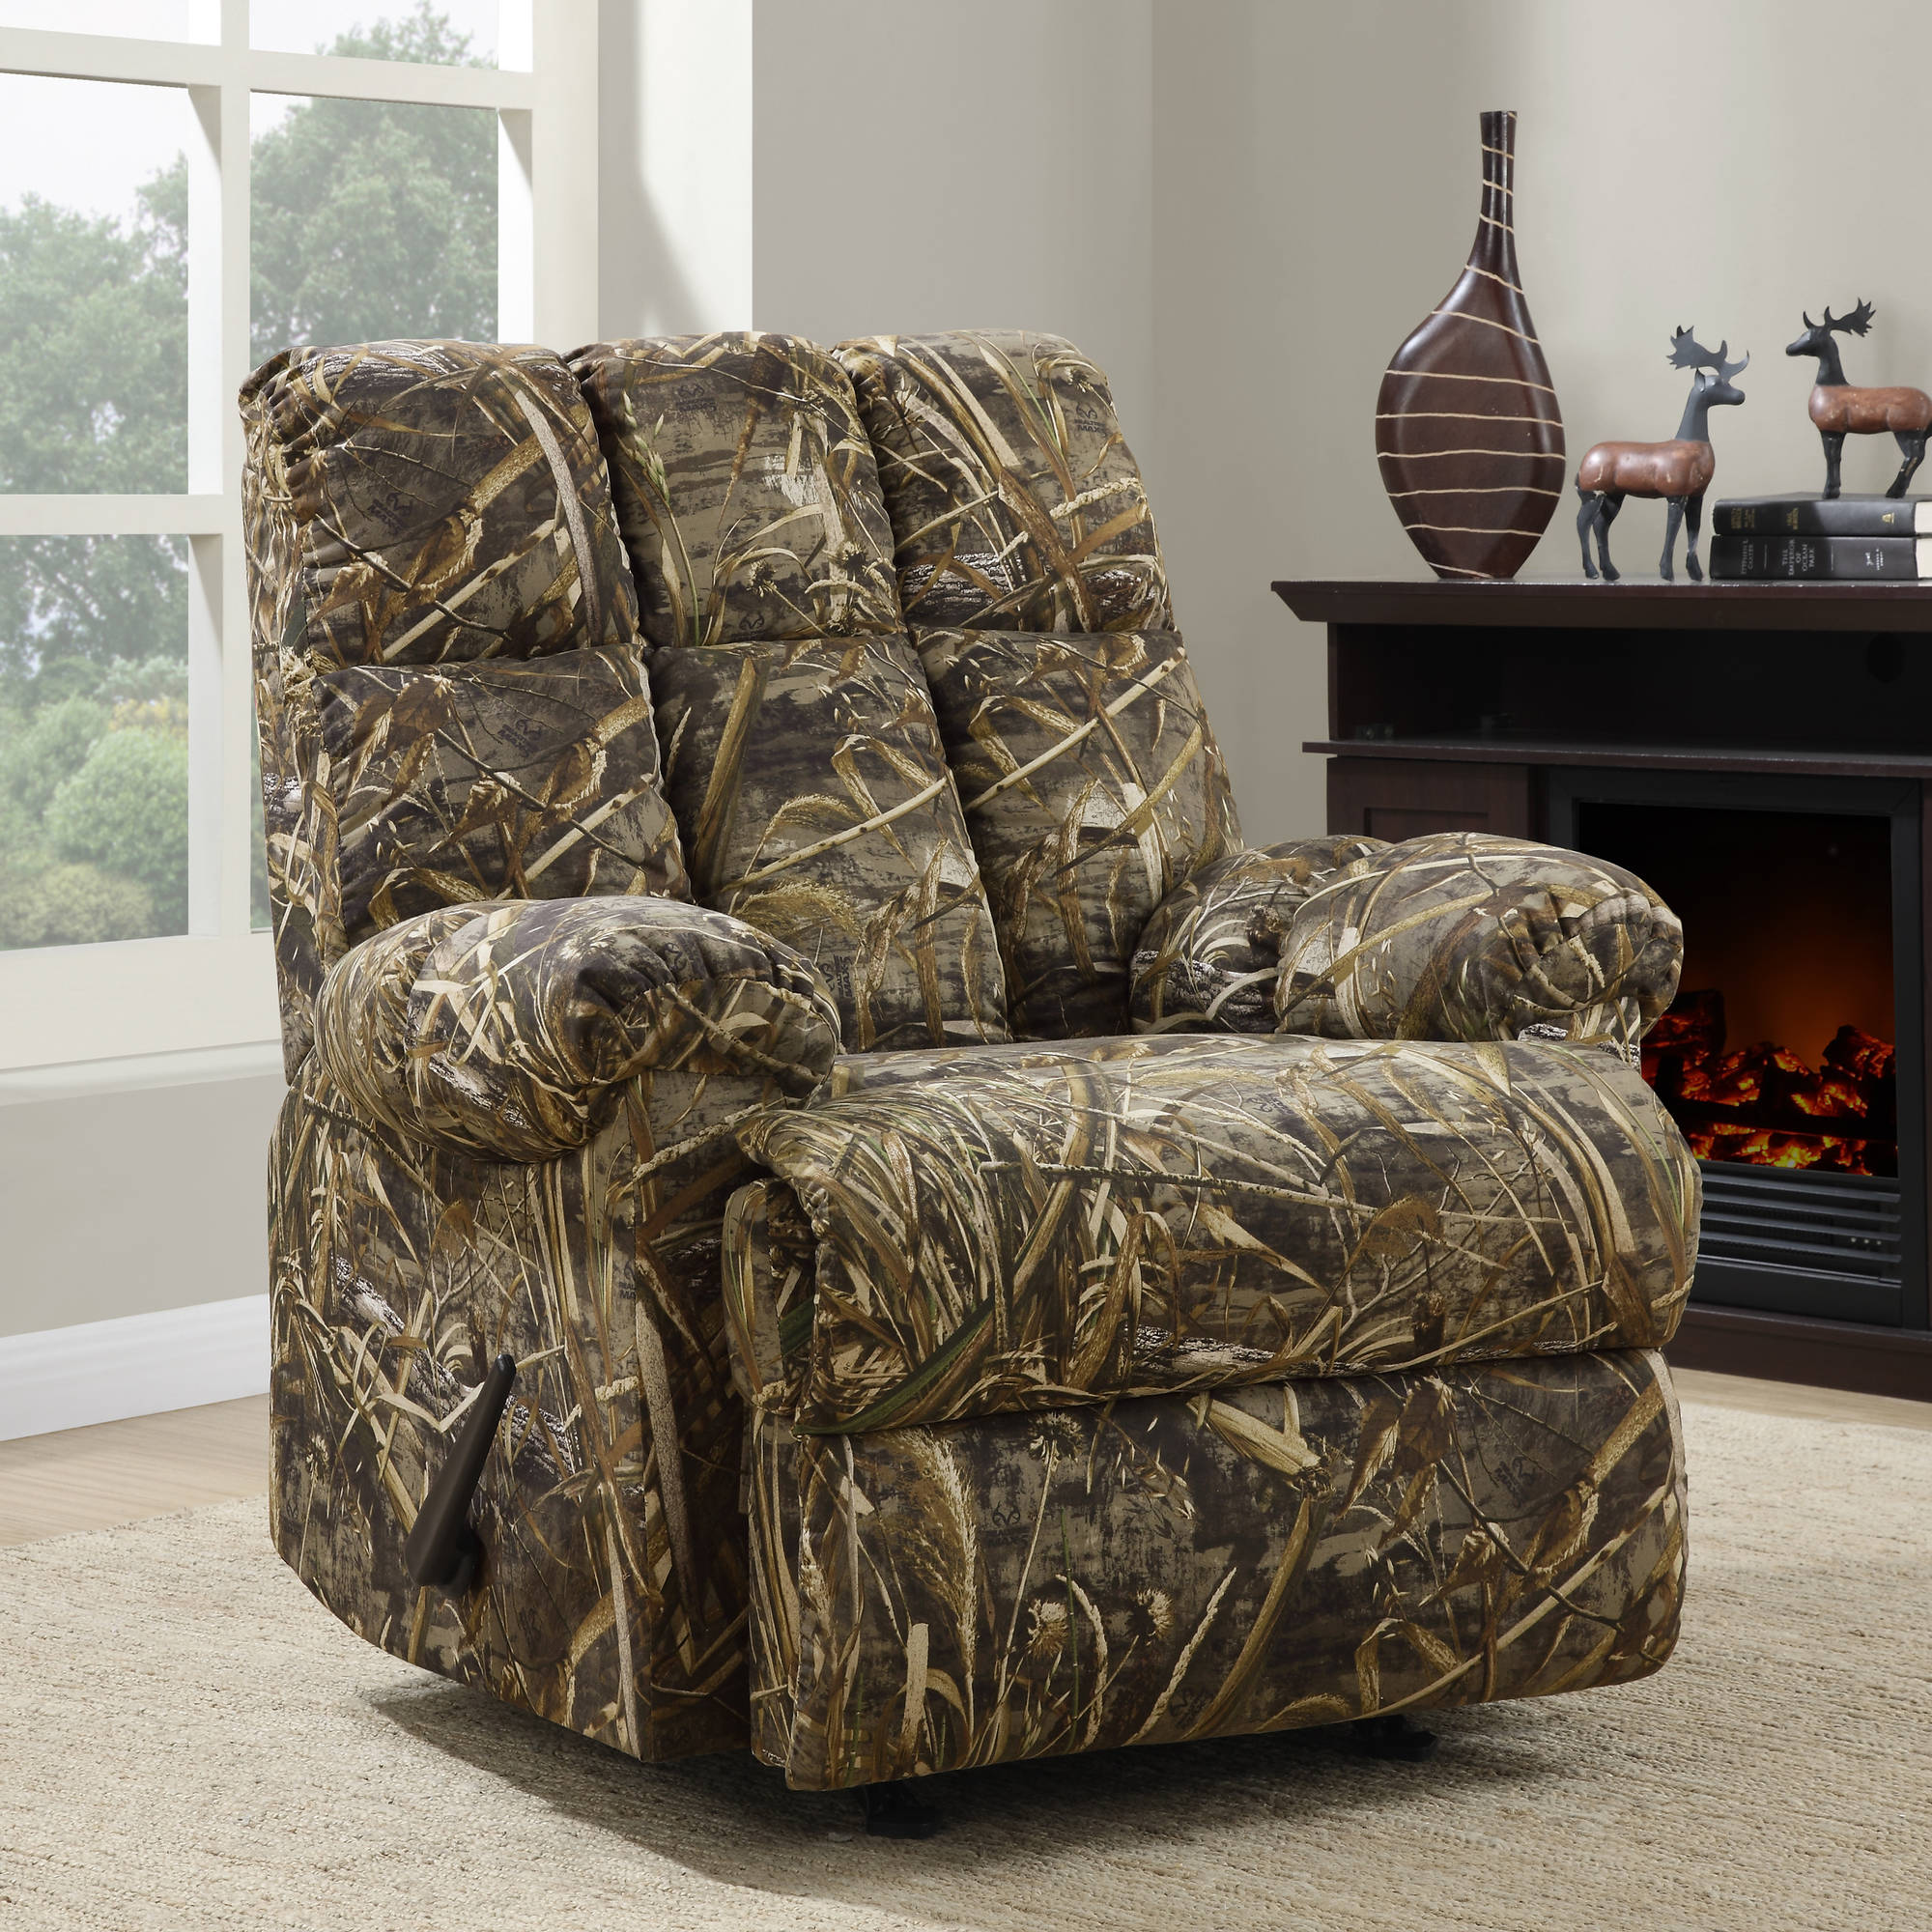 Fabulous Dorel Living Realtree Camouflage Rocker Recliner Walmart Com Pdpeps Interior Chair Design Pdpepsorg